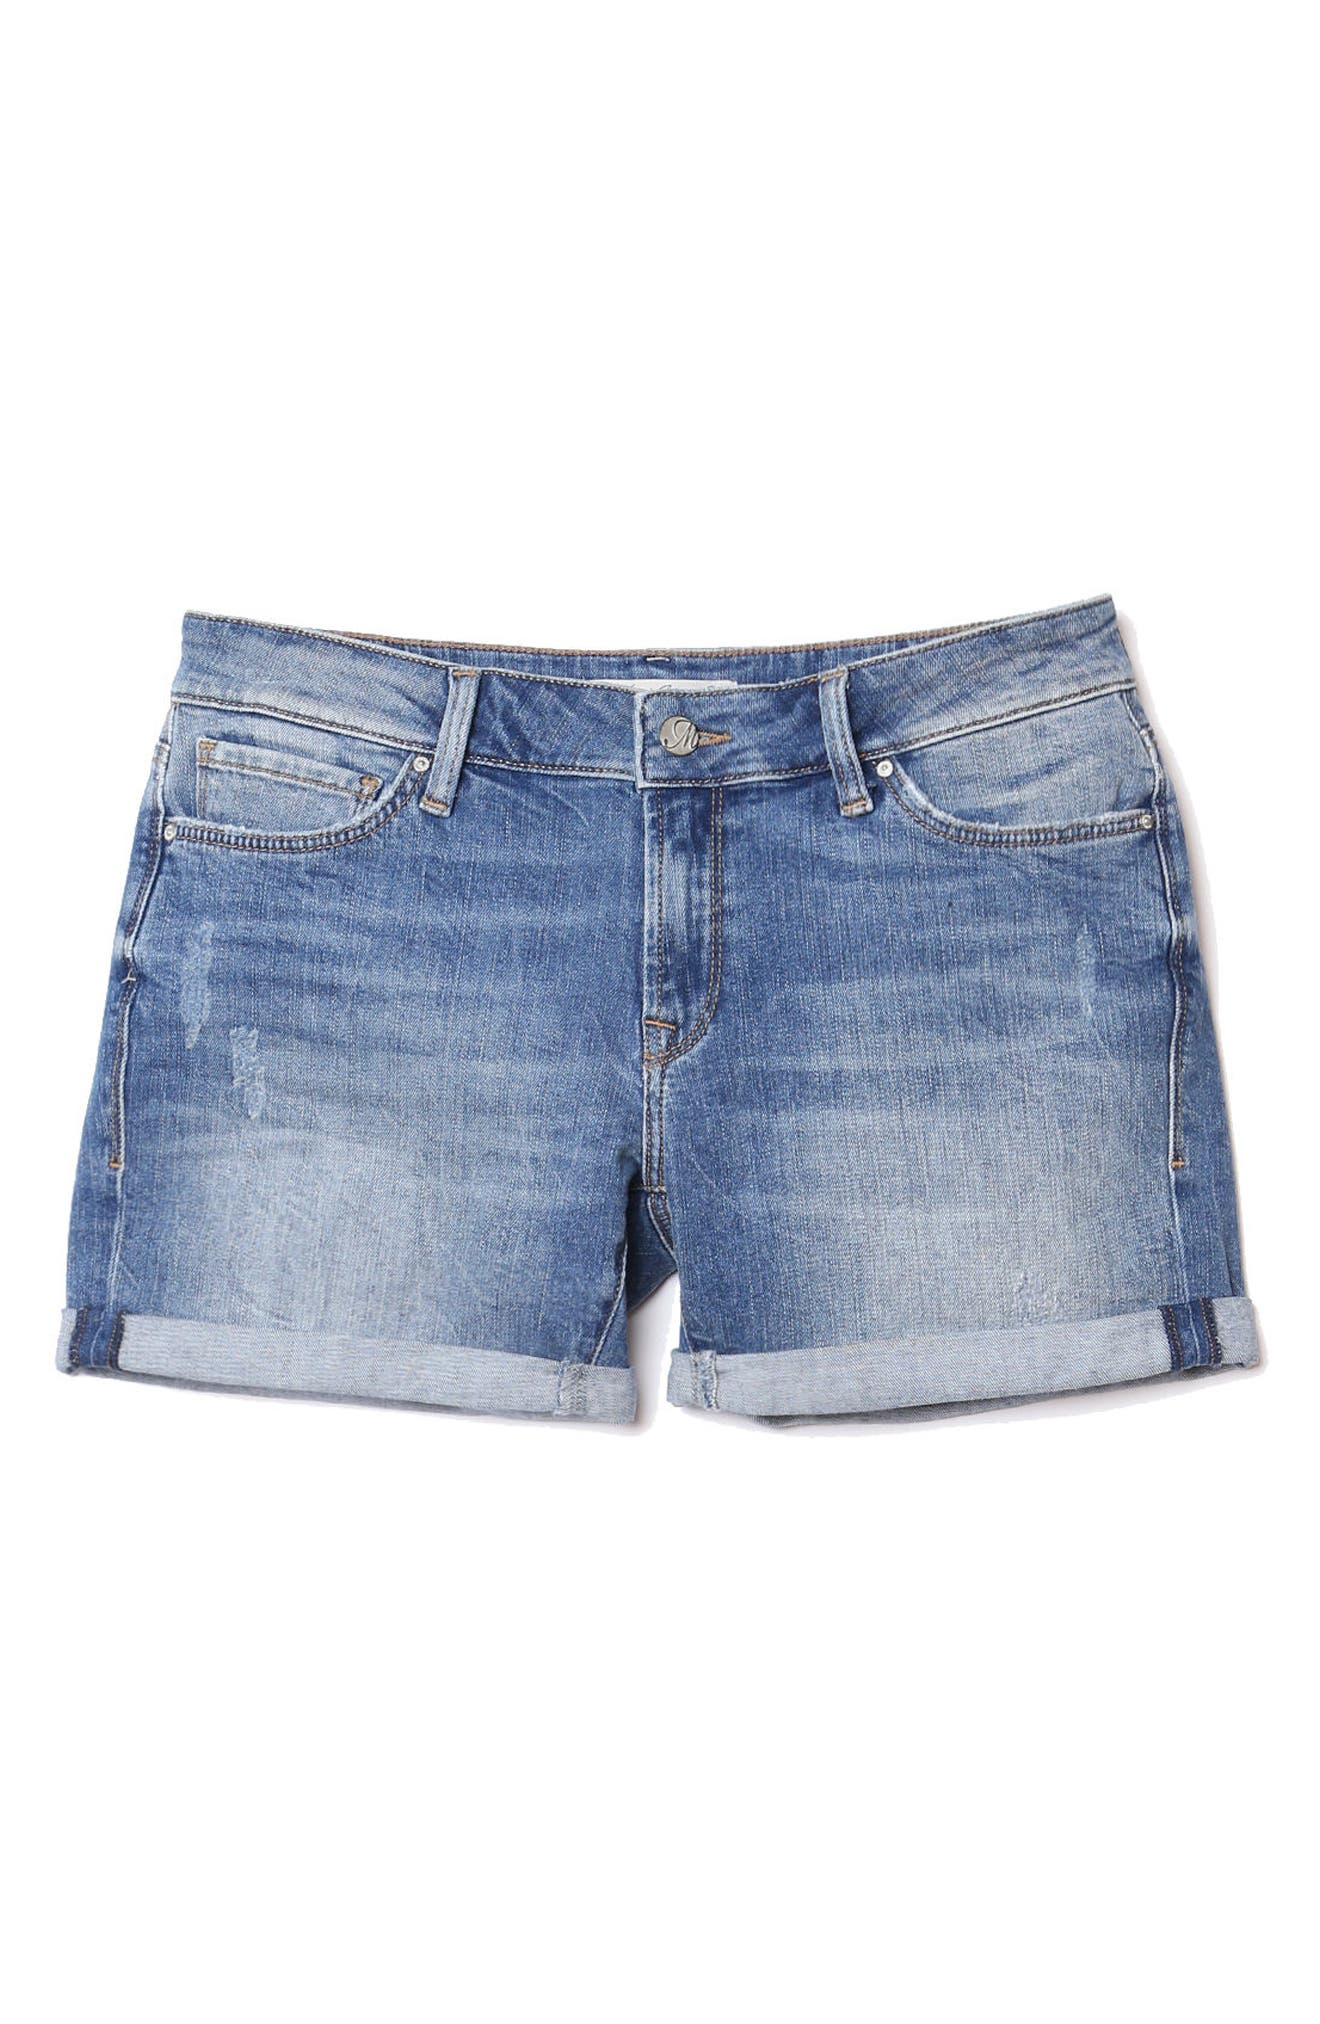 Pixie Denim Boyfriend Shorts,                             Alternate thumbnail 5, color,                             Distressed Vintage